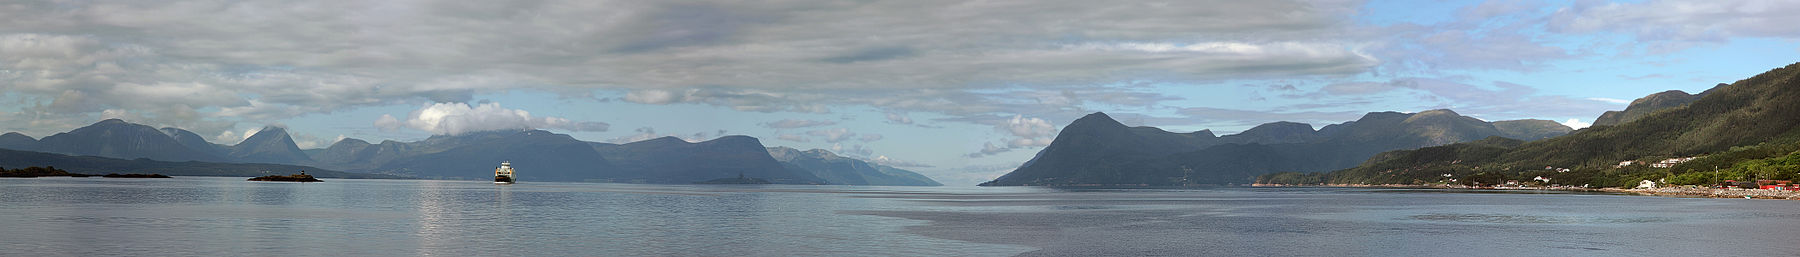 Fjords and coast near Molde